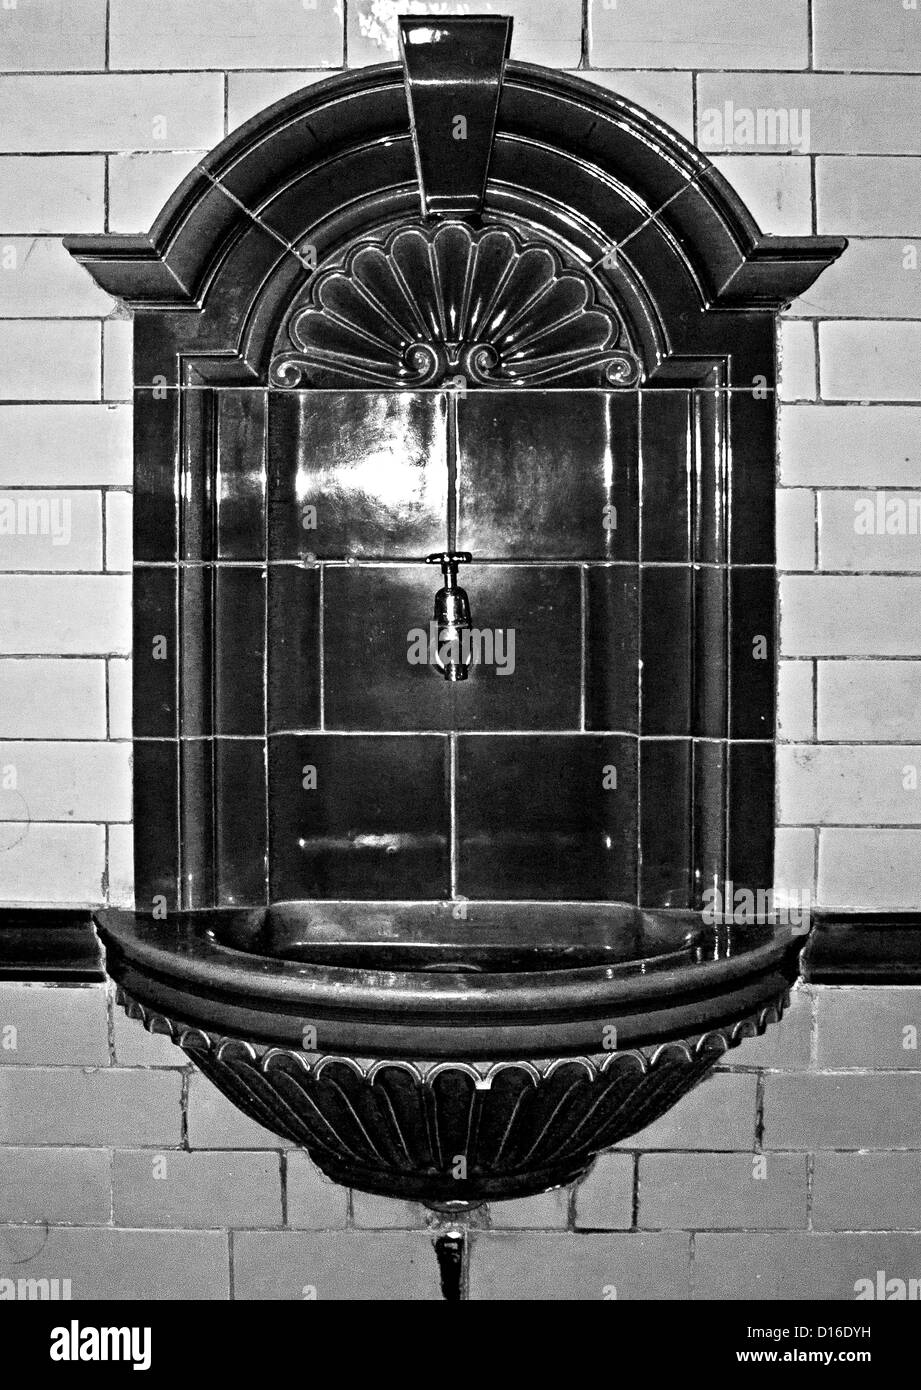 Old drinking trough, Victoria baths - Stock Image